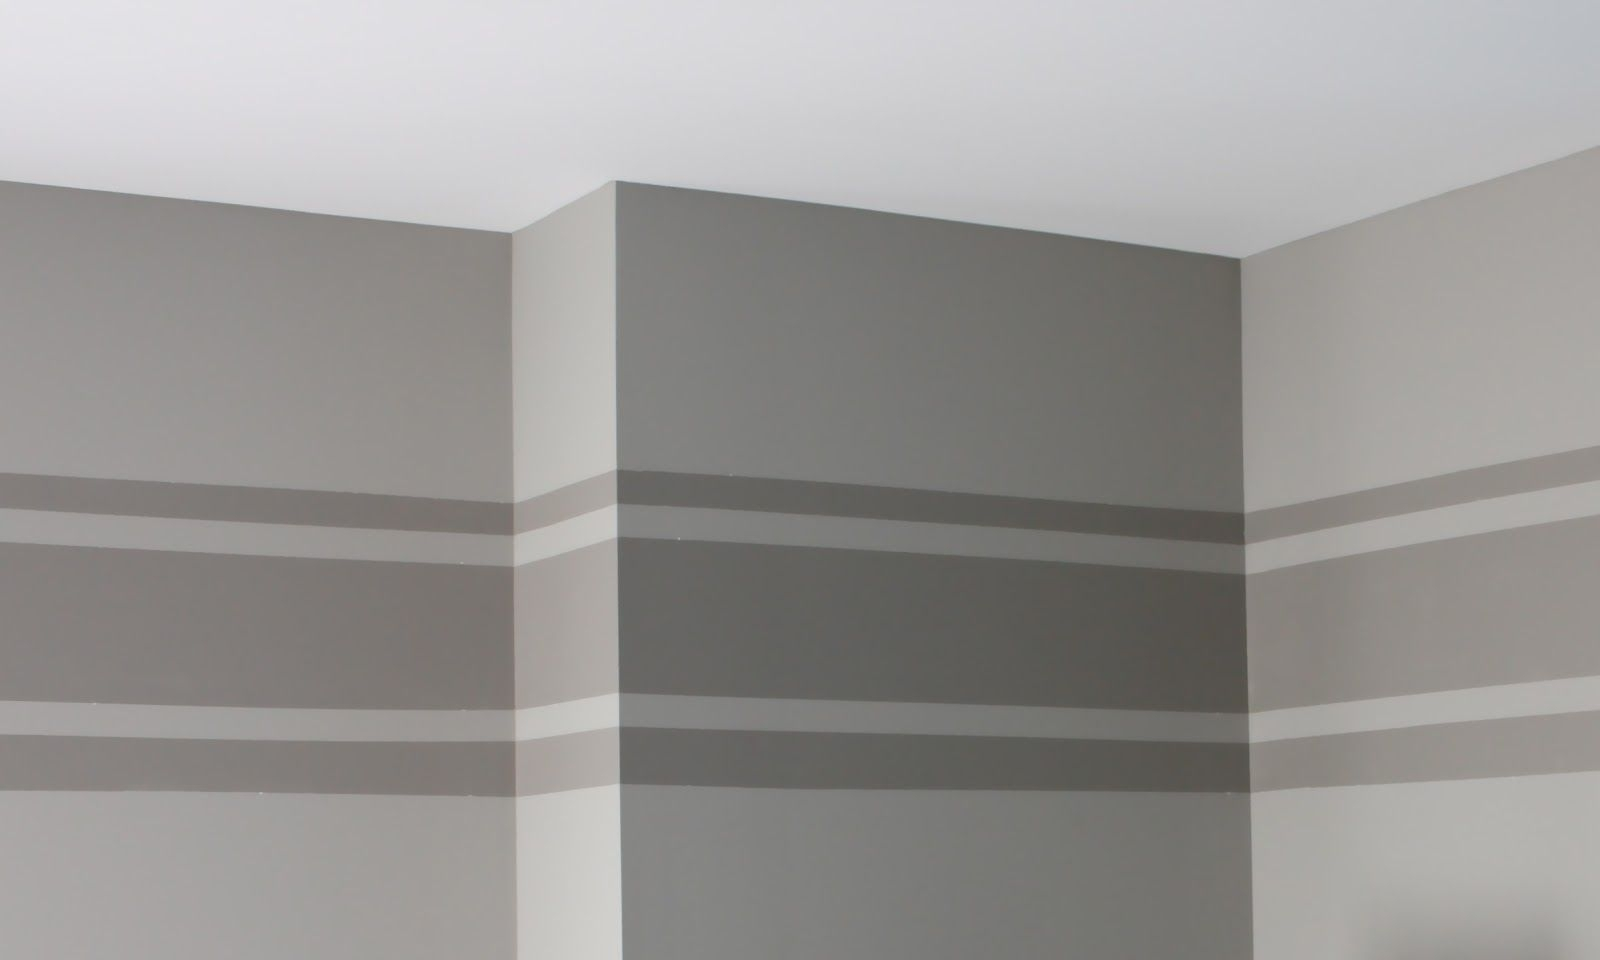 Horizontal Stripe On Wall | First, I Had The Room Painted With The For 2017 Horizontal Stripes Wall Accents (View 7 of 15)